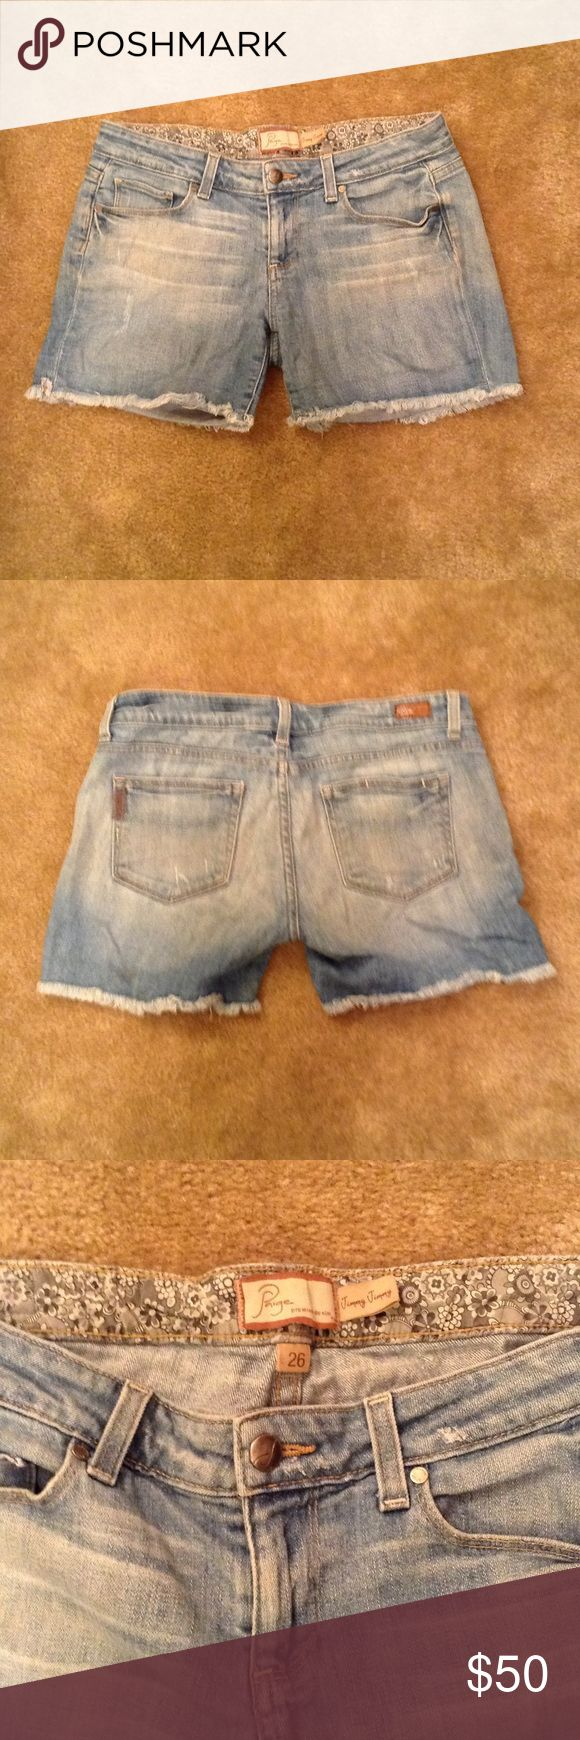 Paige Jean Shorts Paige Jimmy Jimmy Jean Shorts with frayed hem. Good condition. Paige Jeans Shorts Jean Shorts